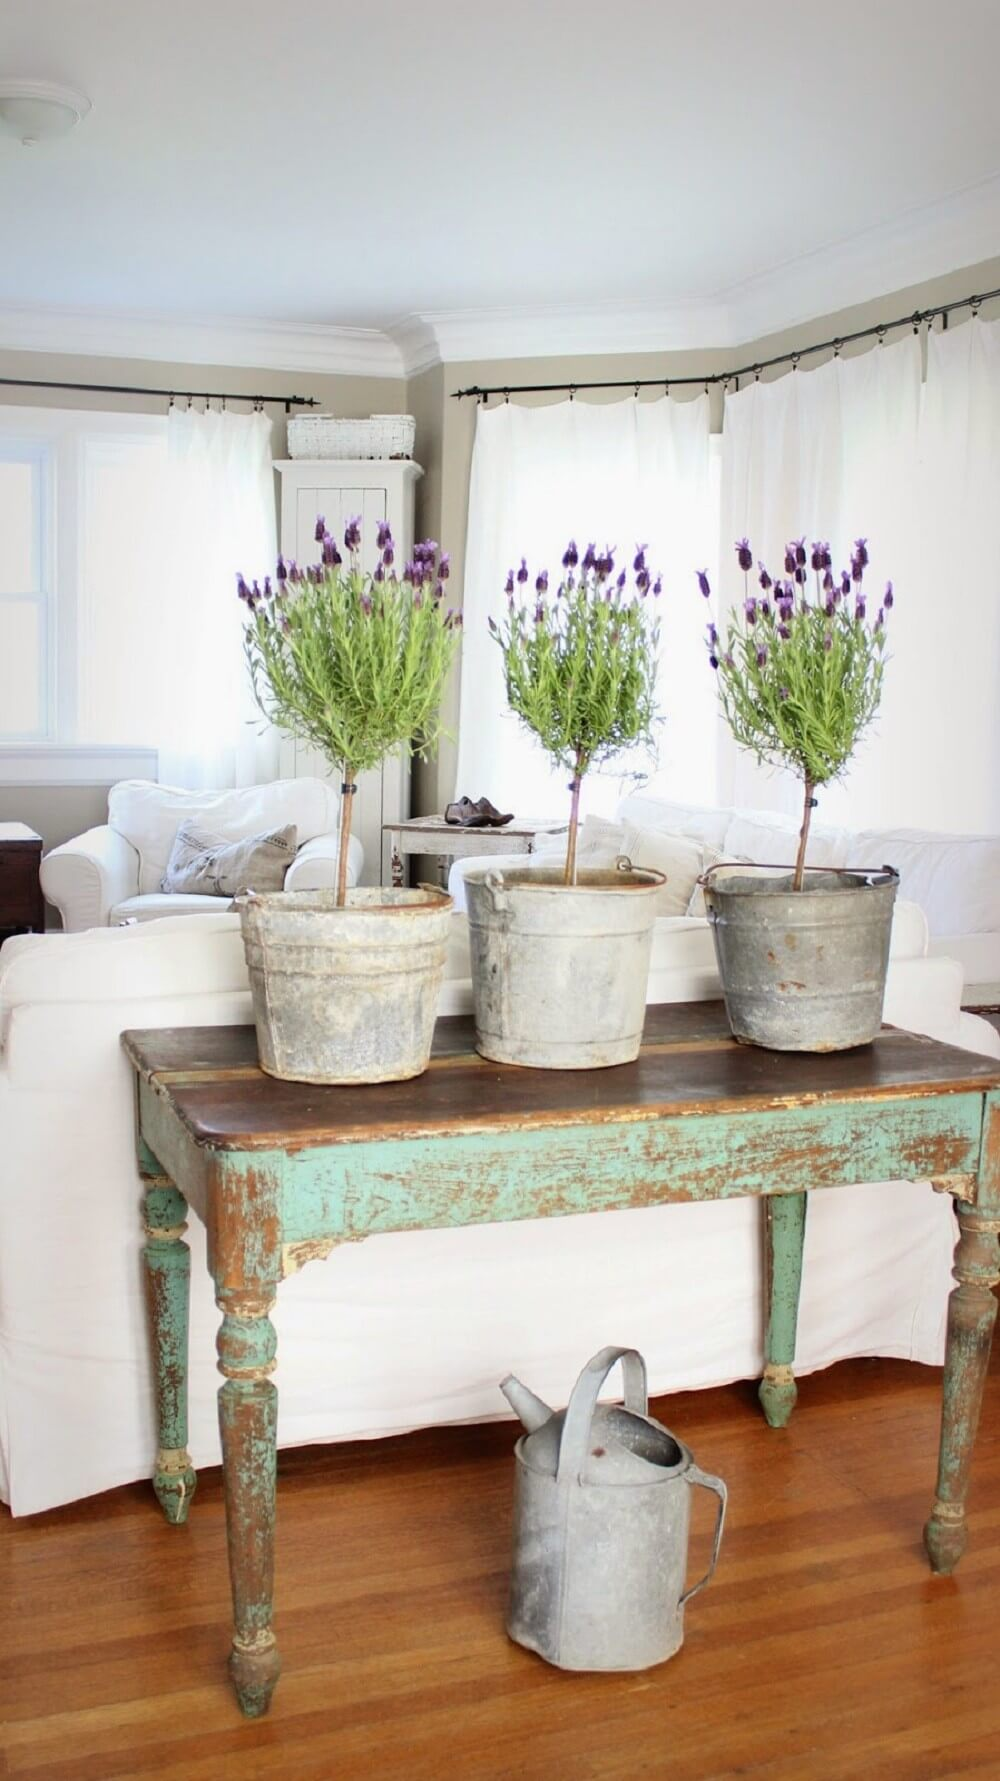 Bring Colorful Potted Plants Indoors